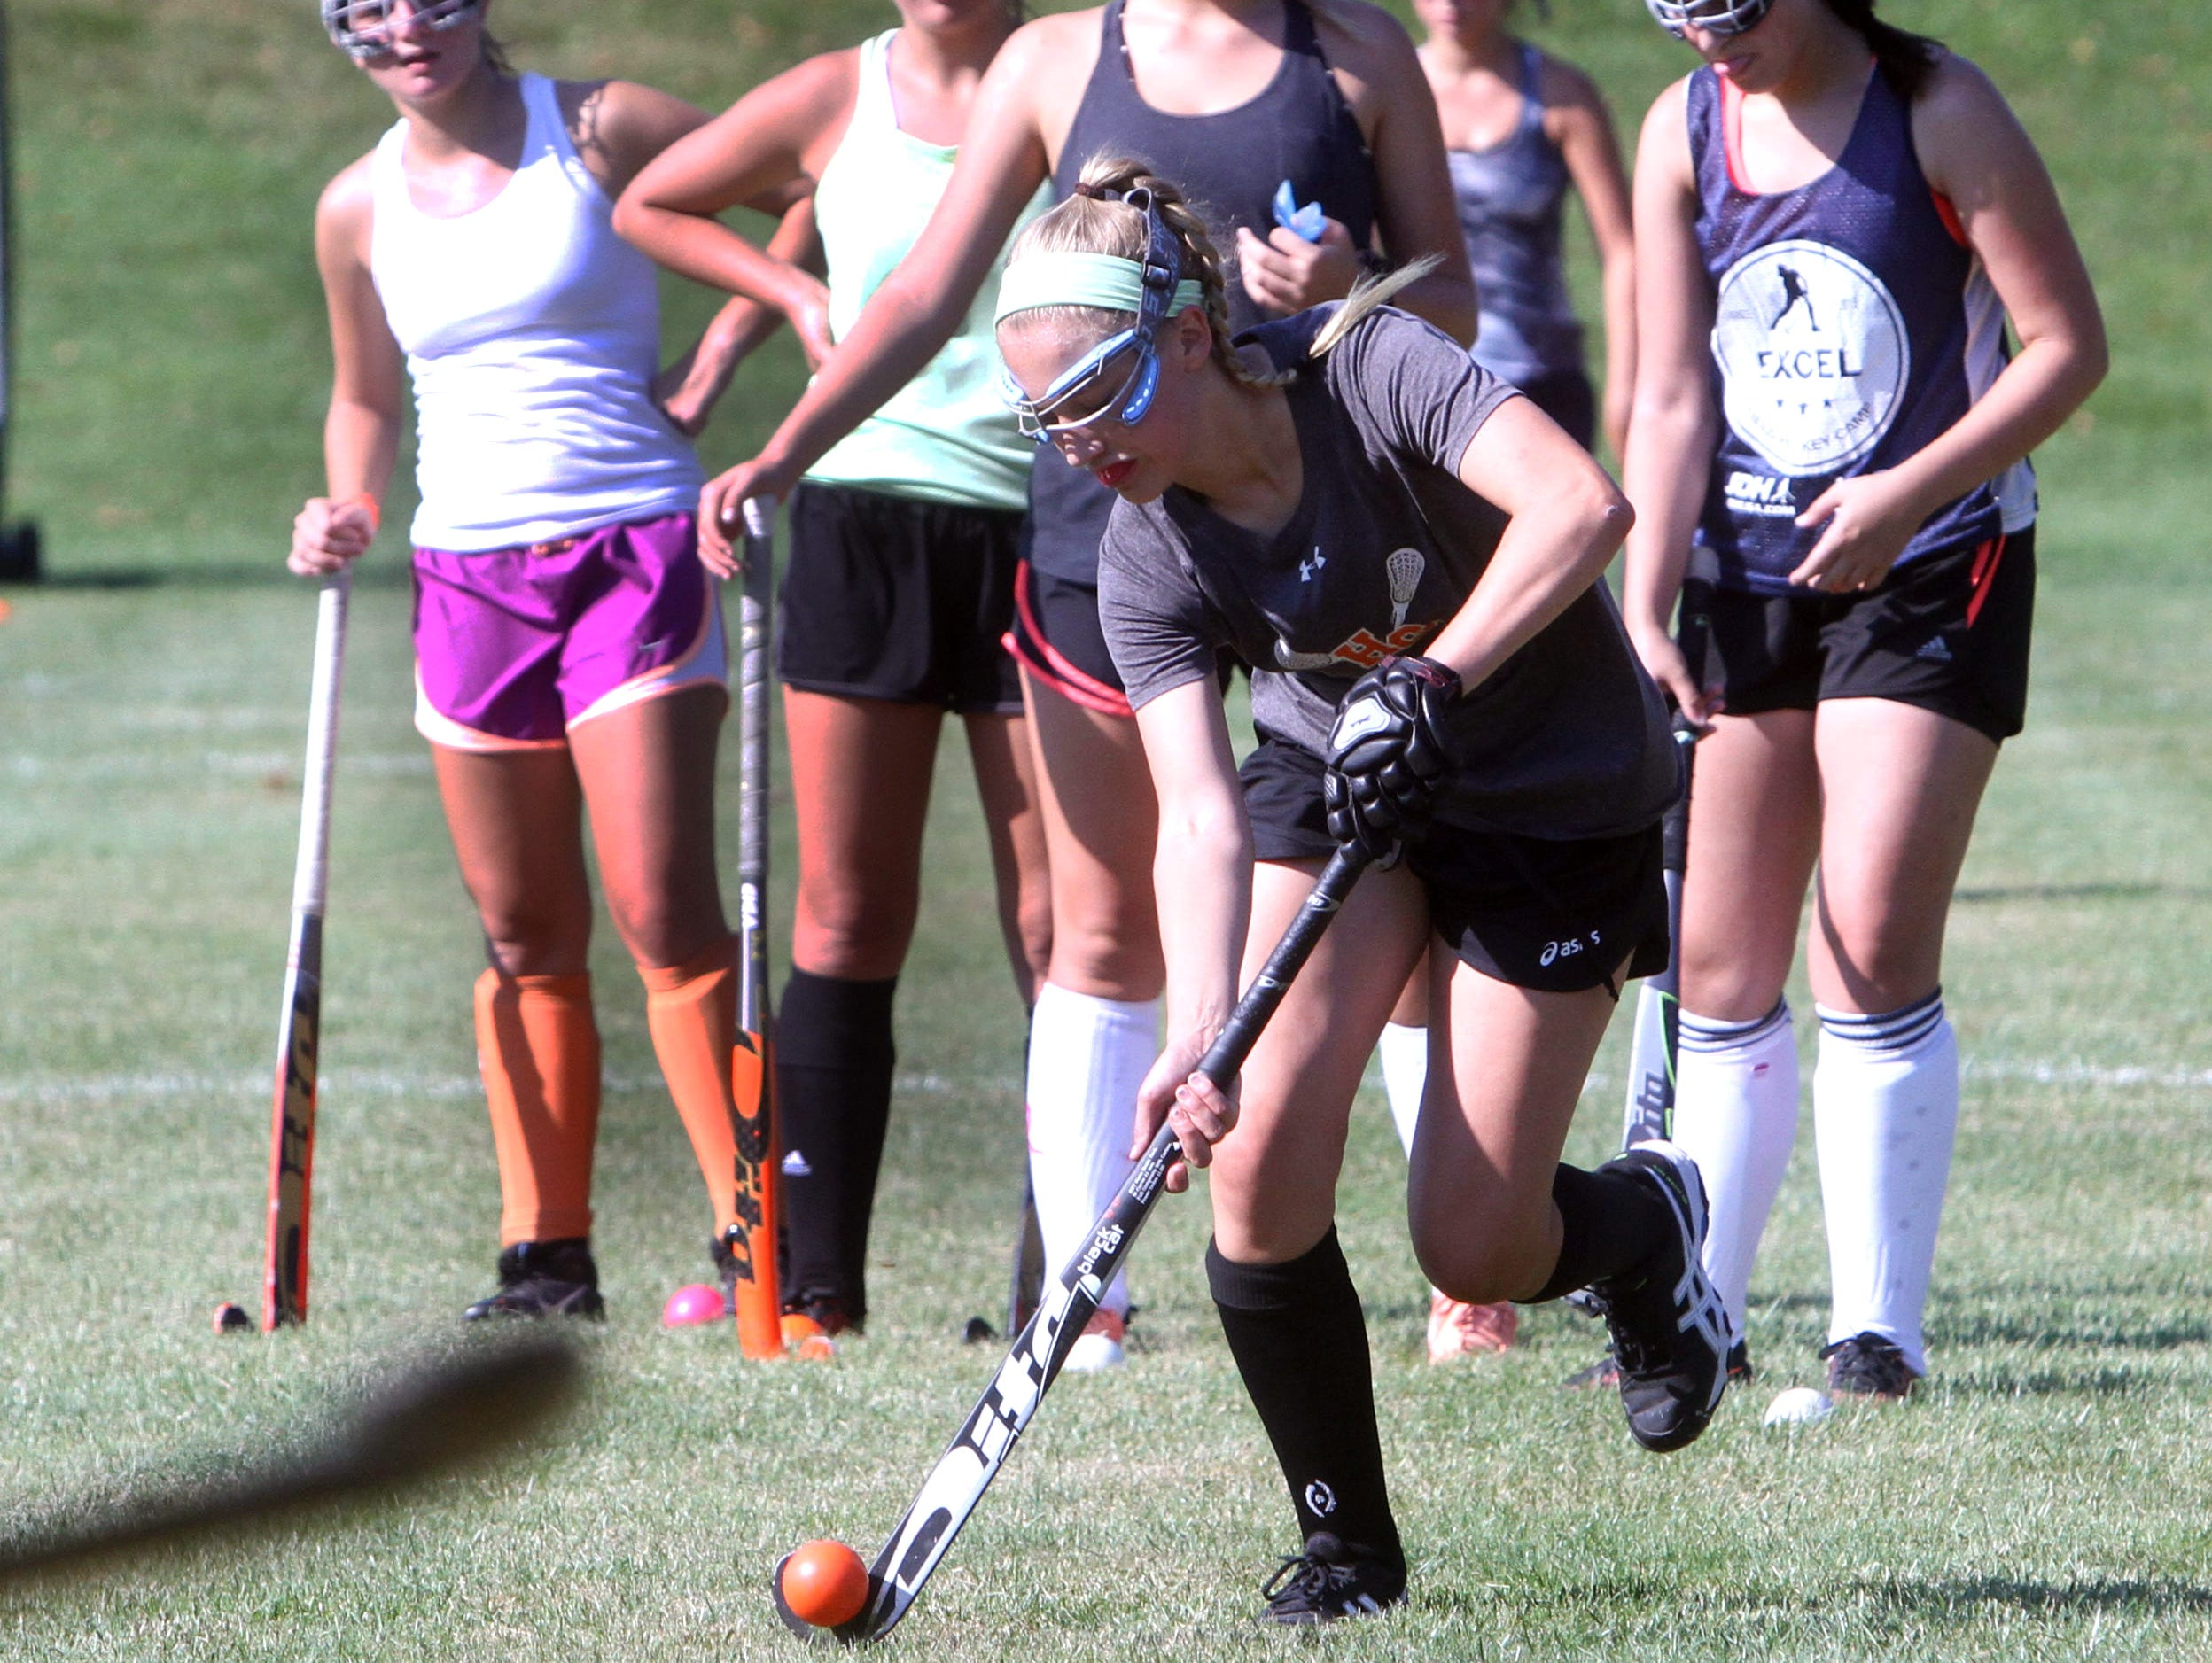 Nikki Potter of Horace Greeley controls the ball during field hockey practice on Wednesday.